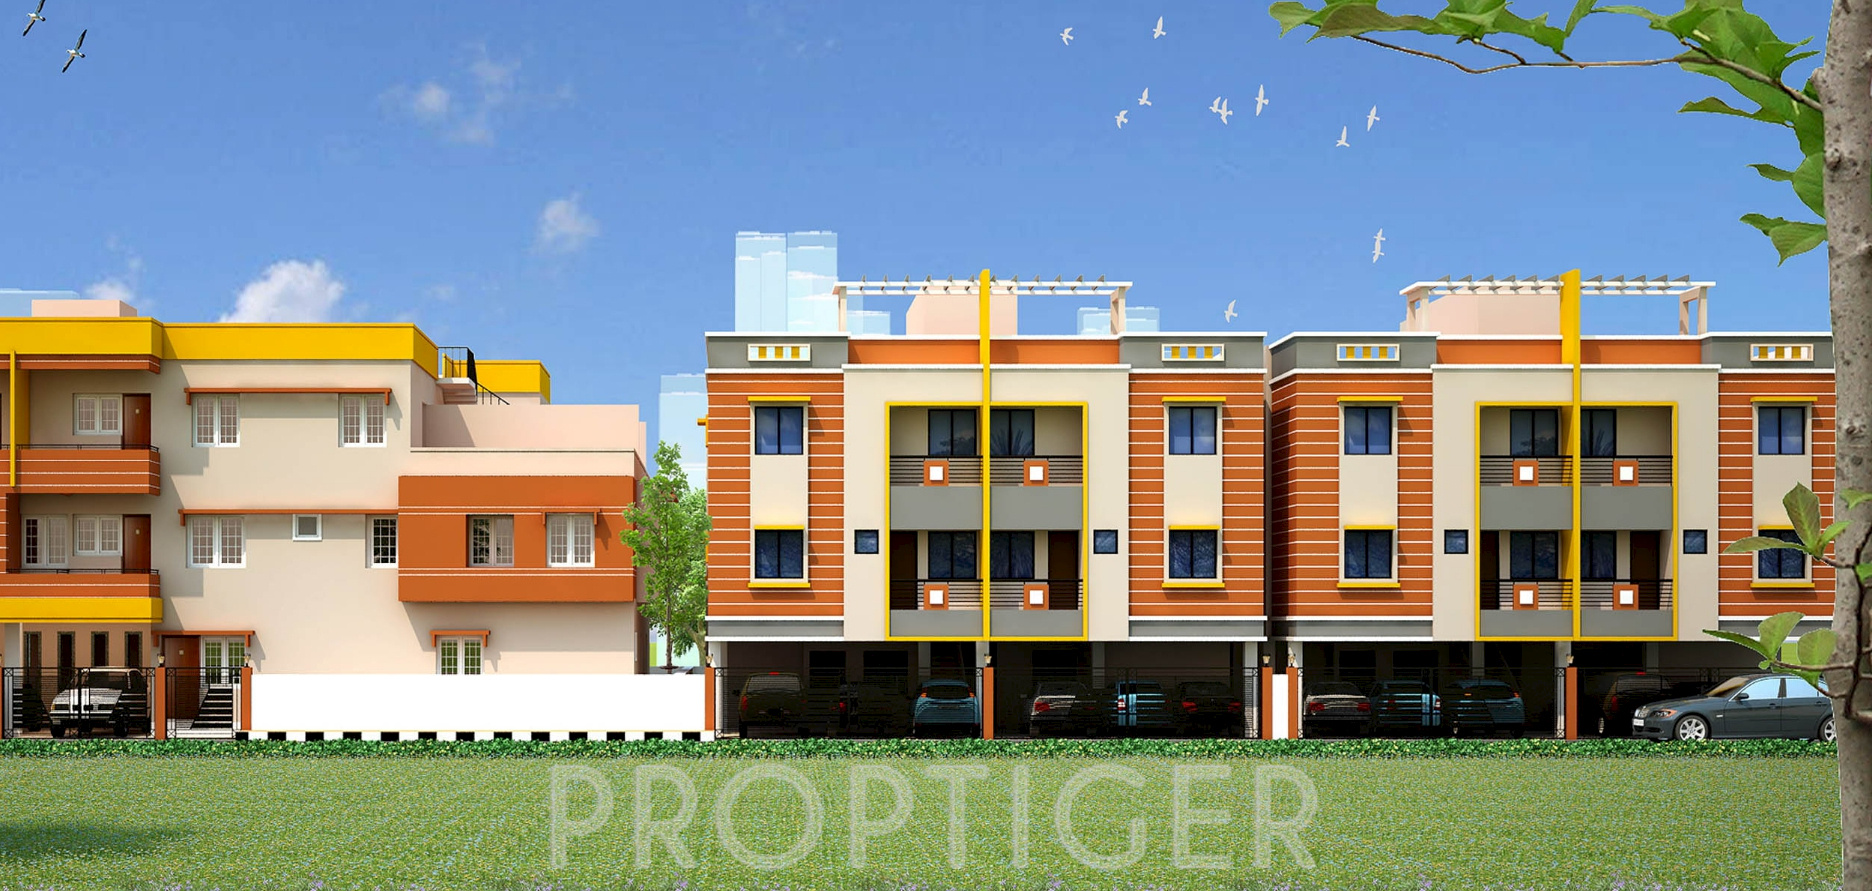 525 sq ft 2 bhk 1t apartment for sale in bhaveshwar 525 sq ft apartment